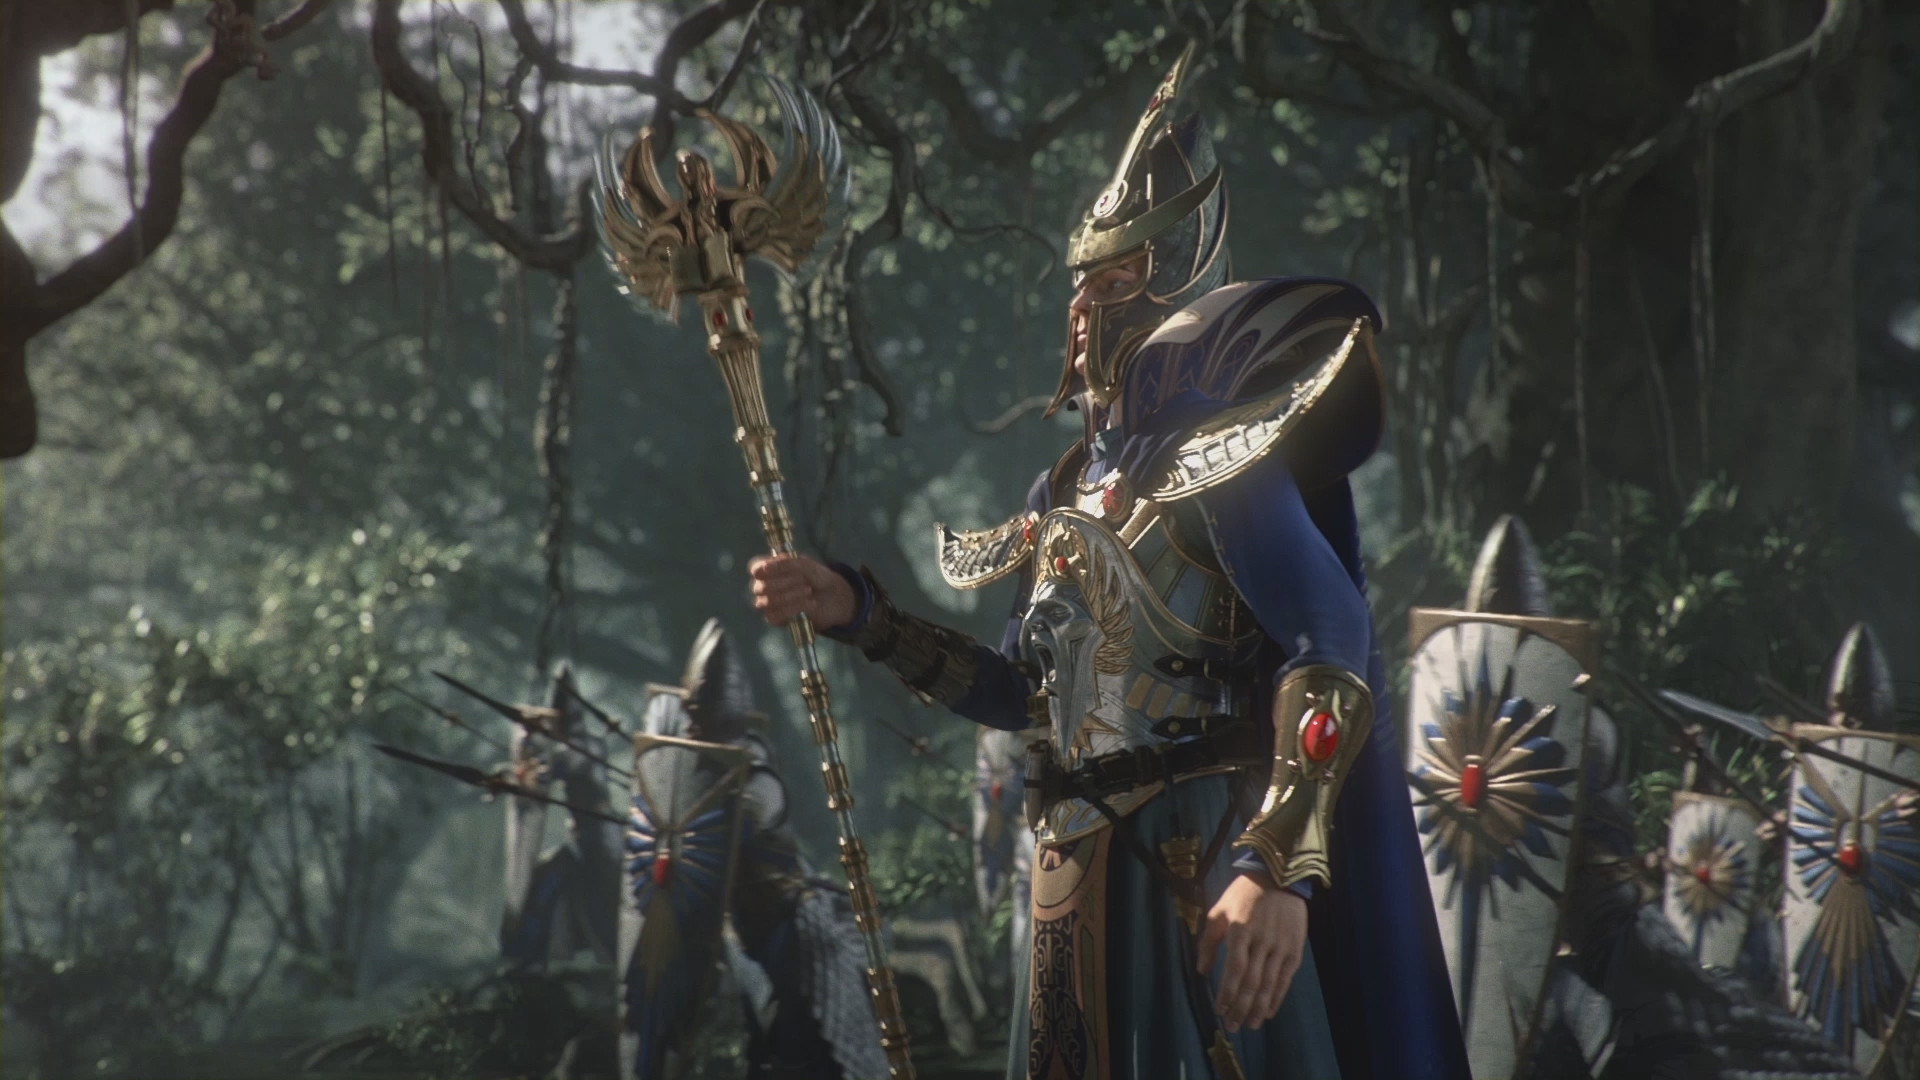 Warhammer Total War 2 High Elves 1060630 Hd Wallpaper